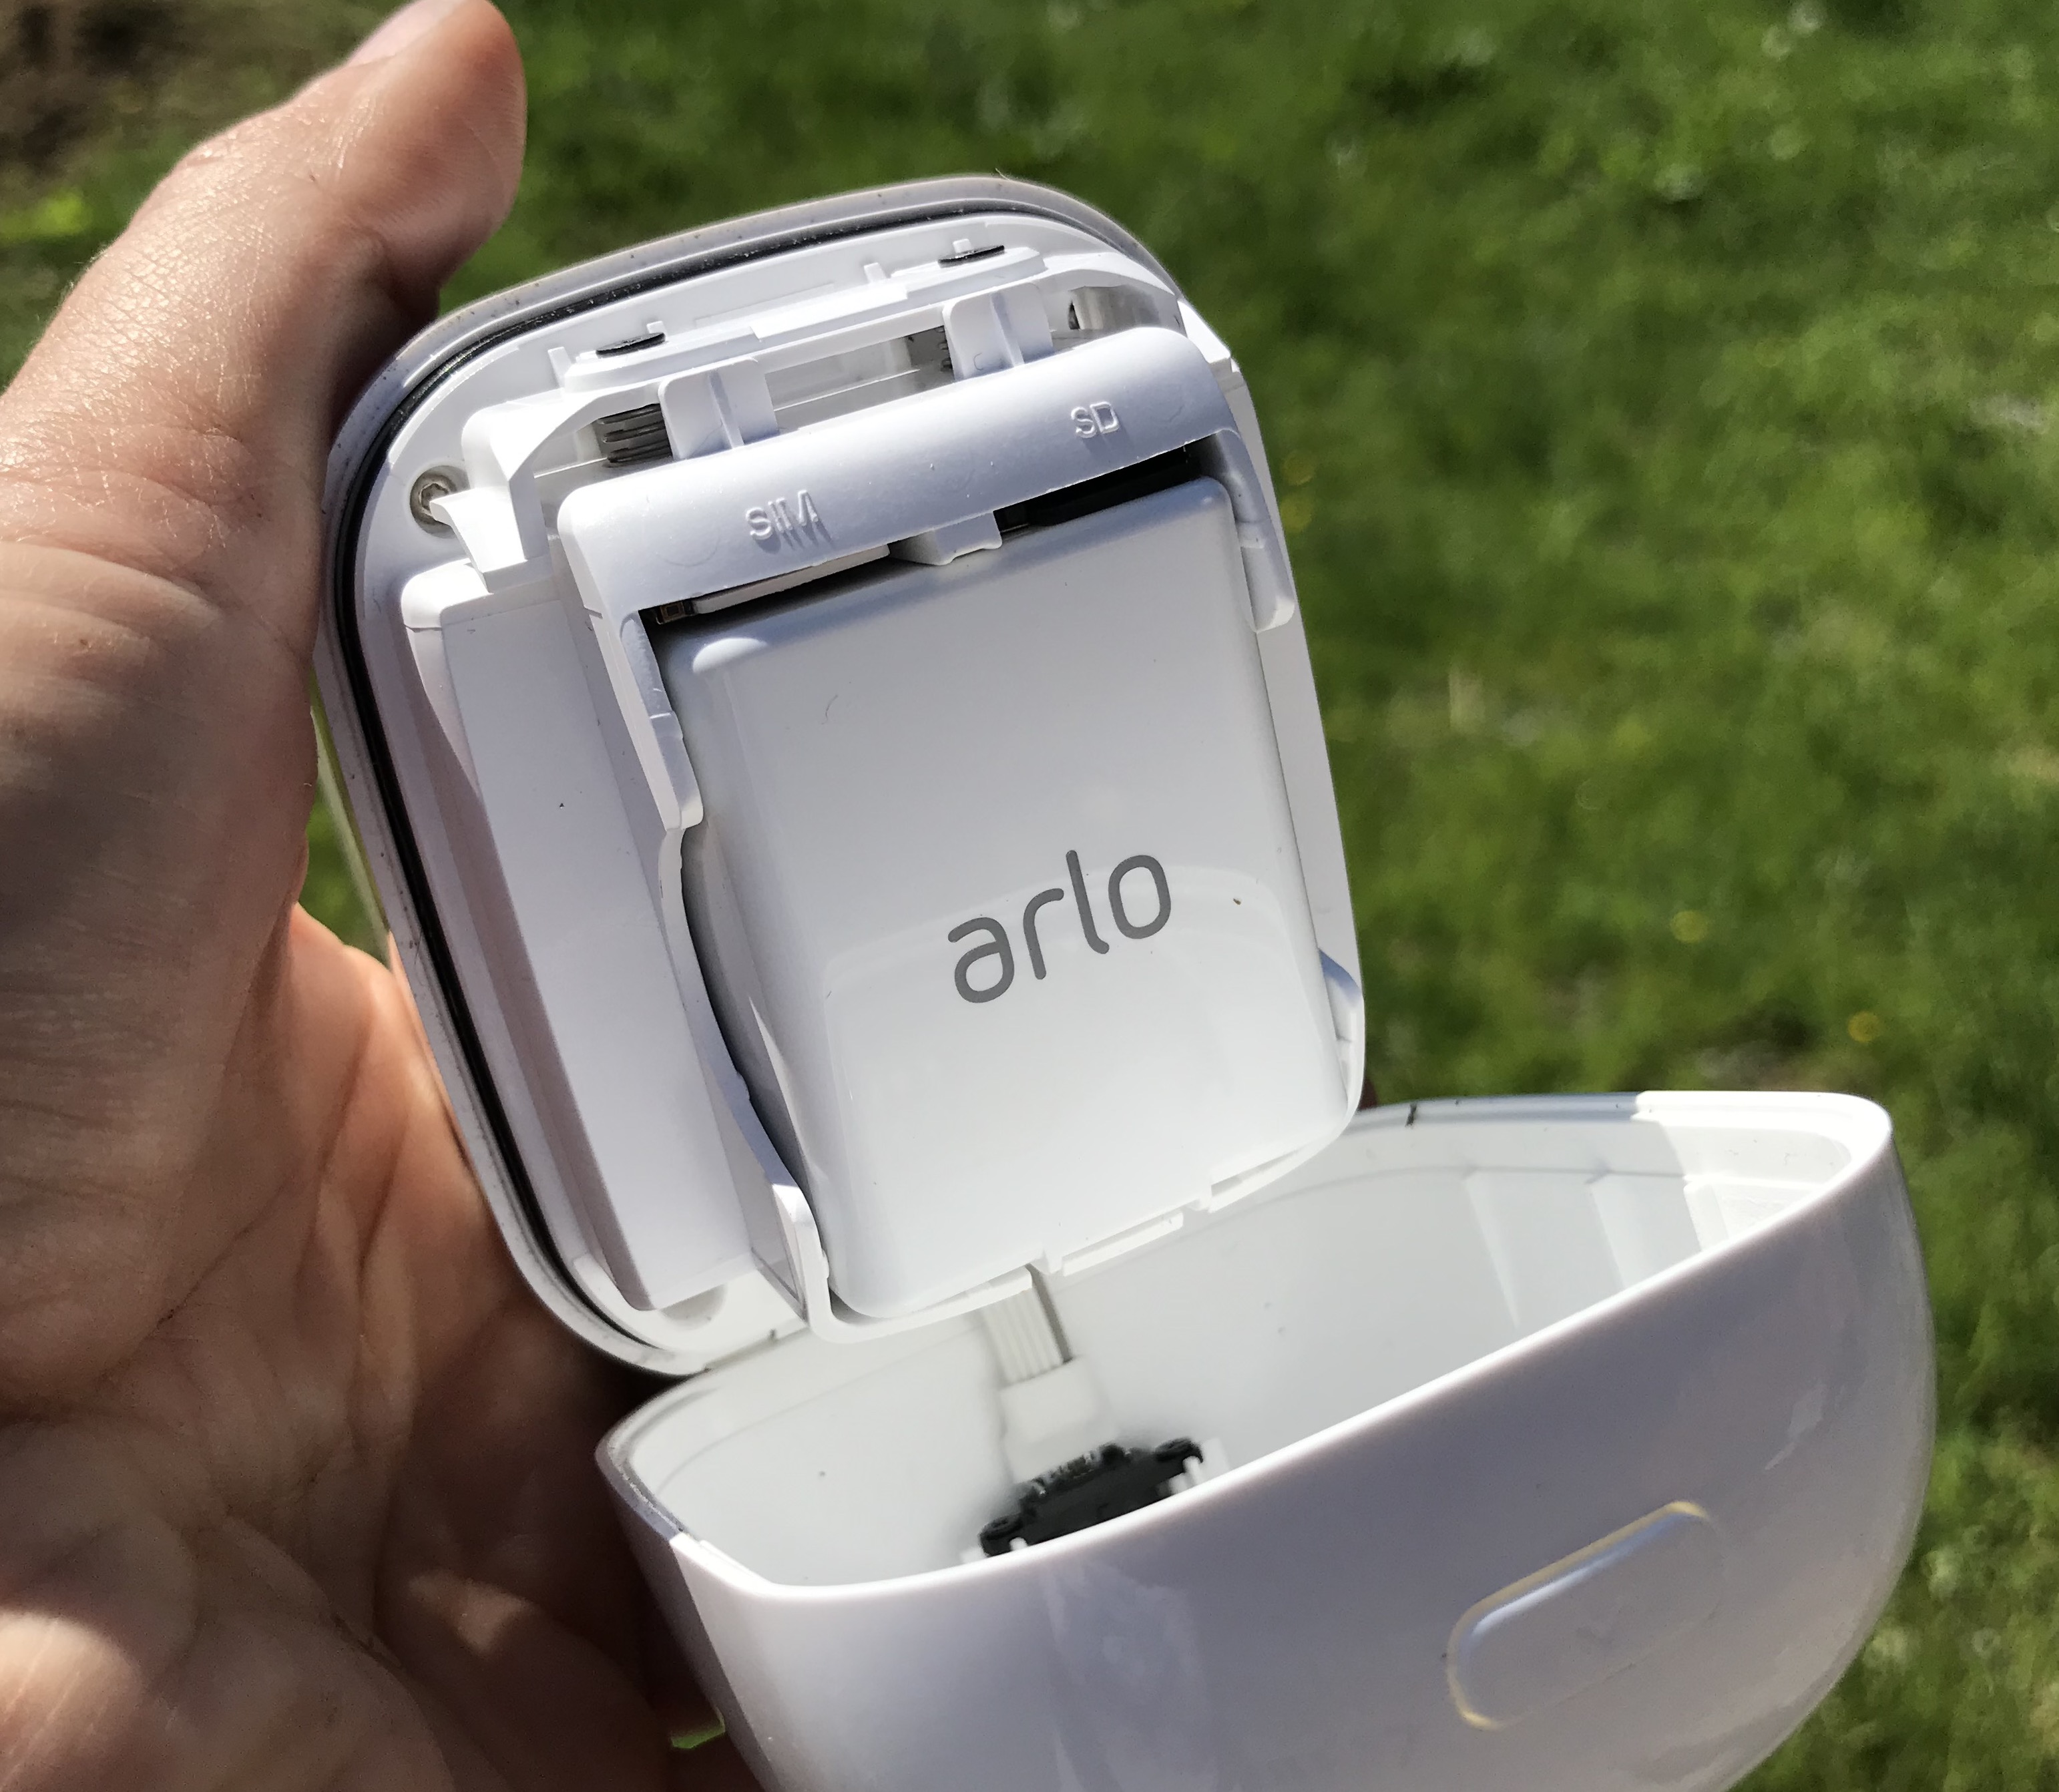 Arlo Go battery compartment